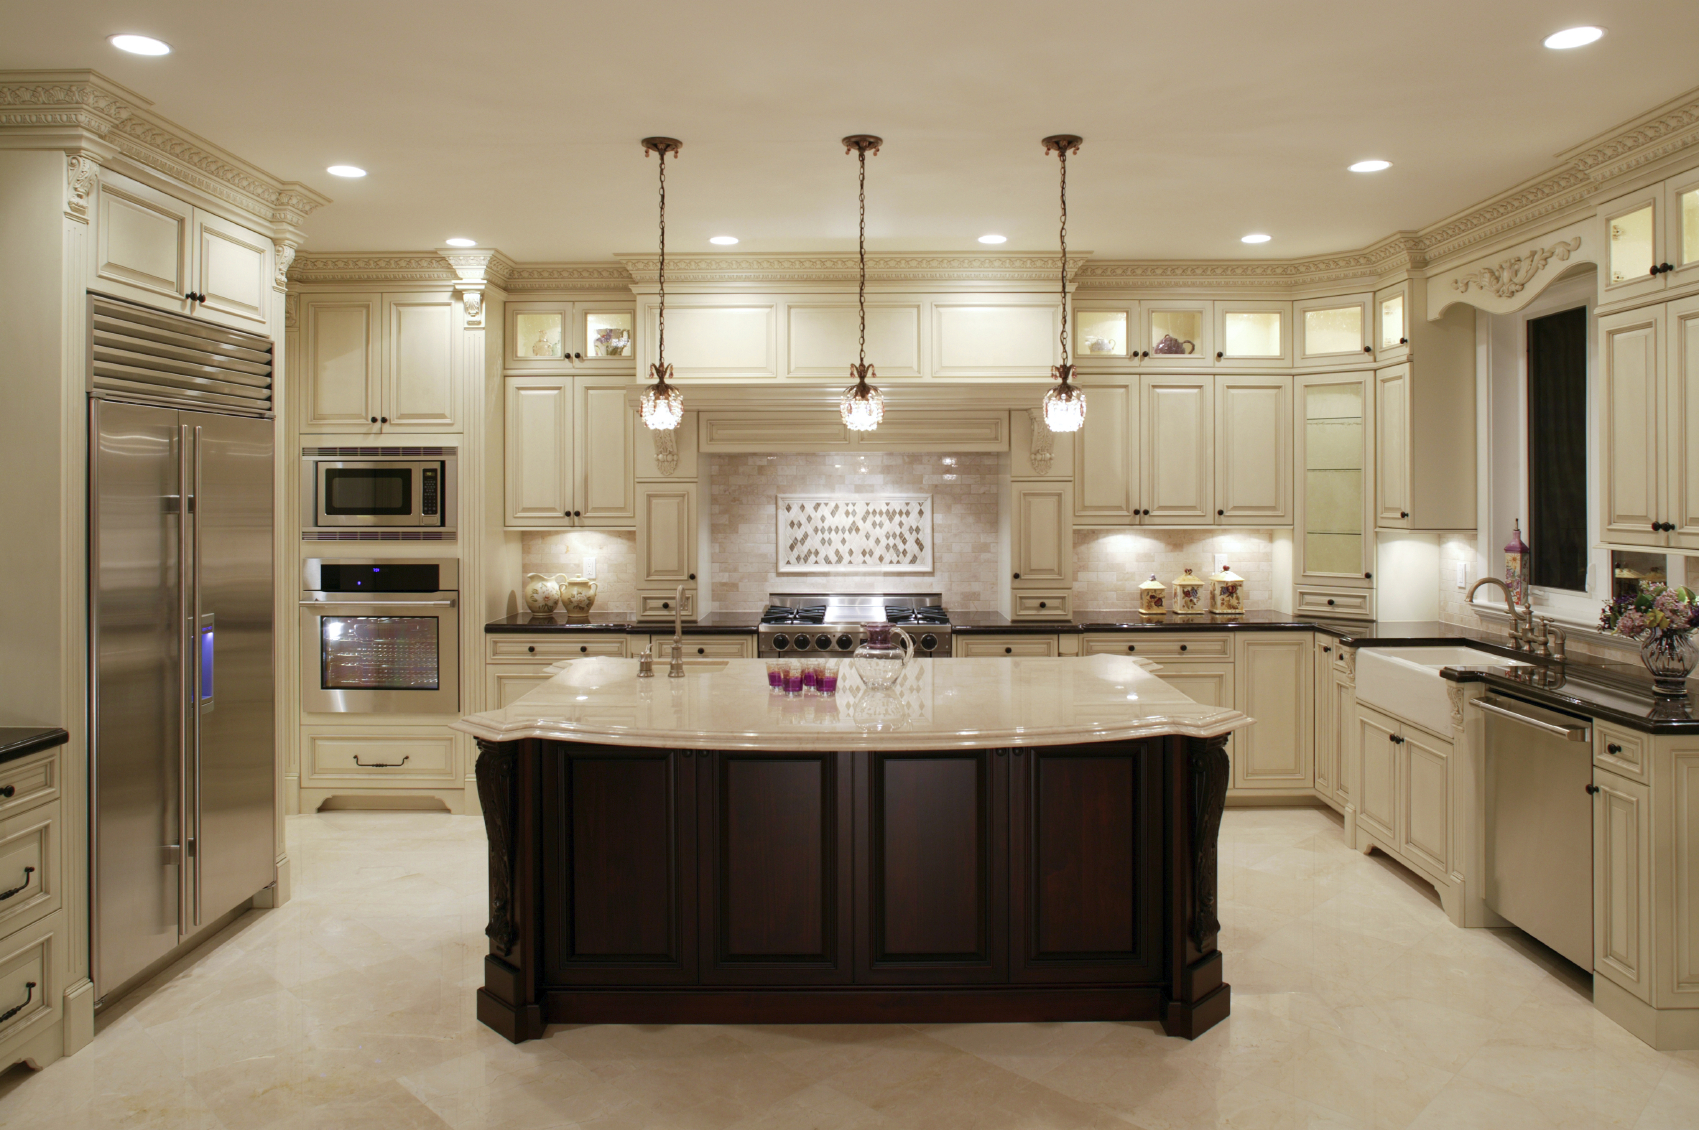 Home Remodeling Phoenix Champion Remodeling LLC - Kitchen remodel scottsdale